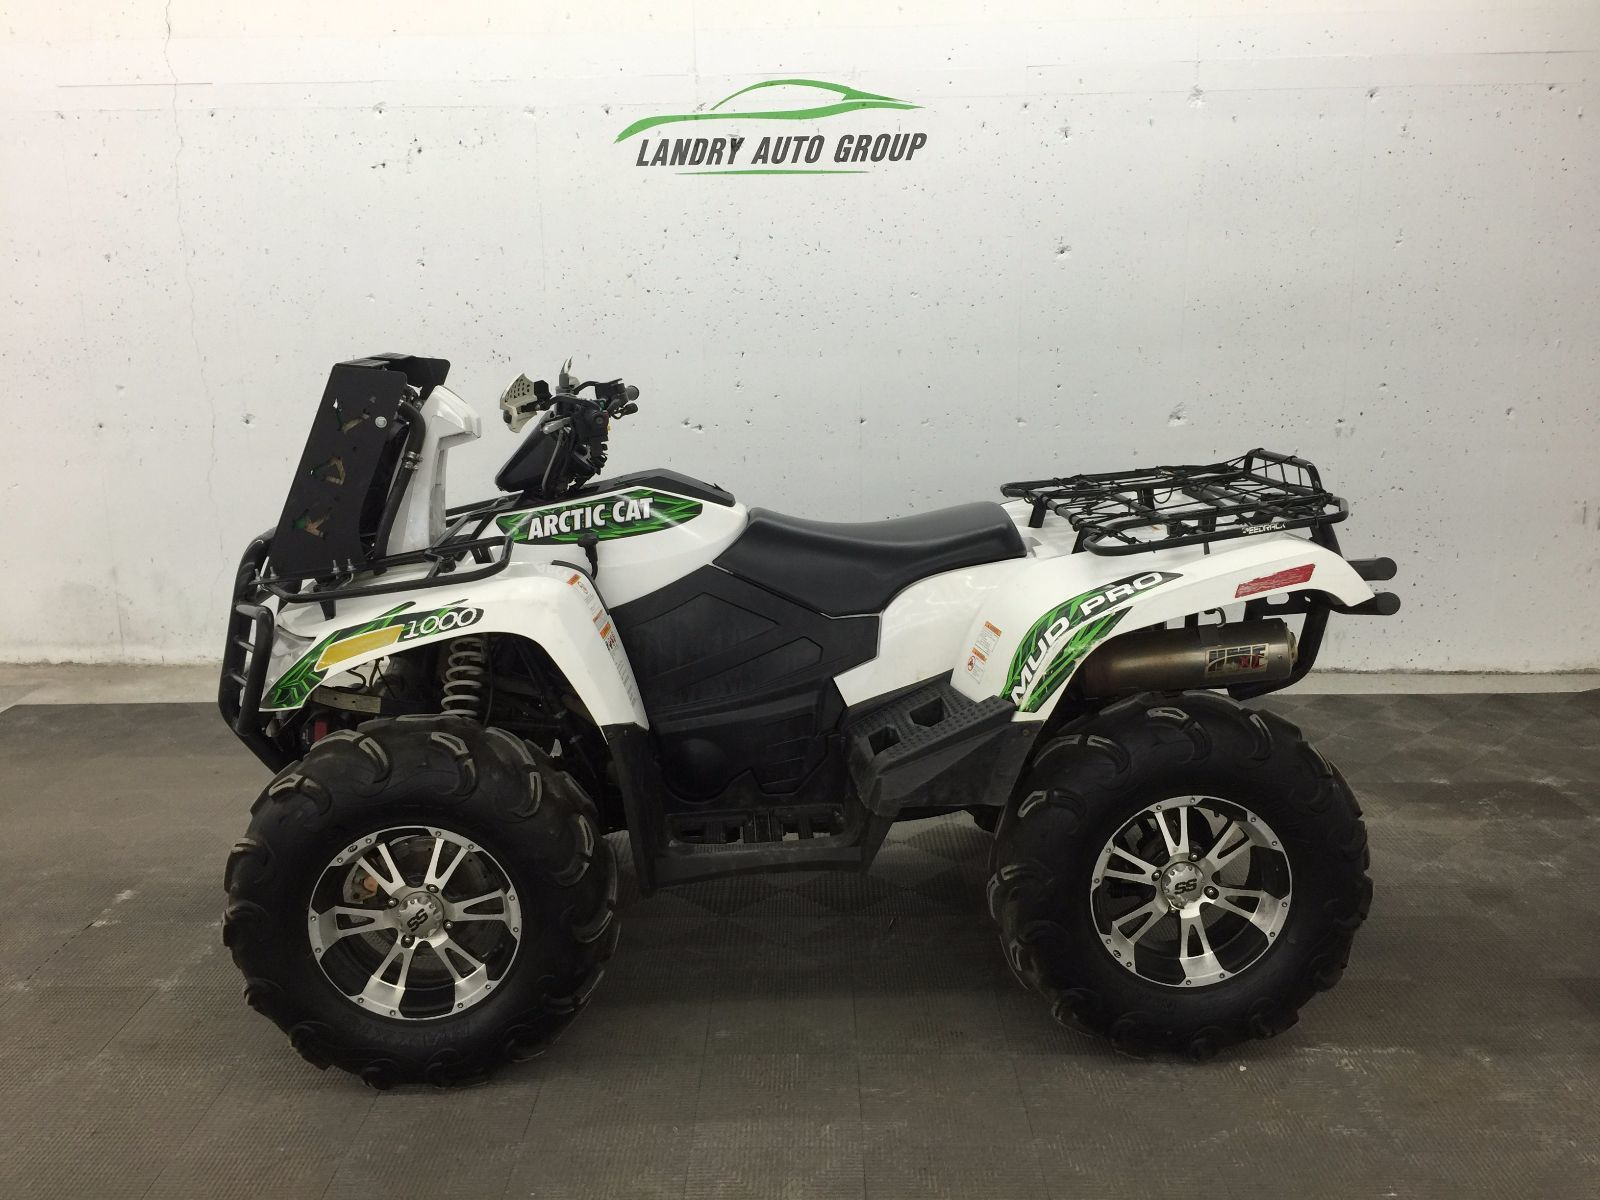 used 2010 arctic cat mud pro 1000 unknown in berwick used inventory berwick used car centre. Black Bedroom Furniture Sets. Home Design Ideas